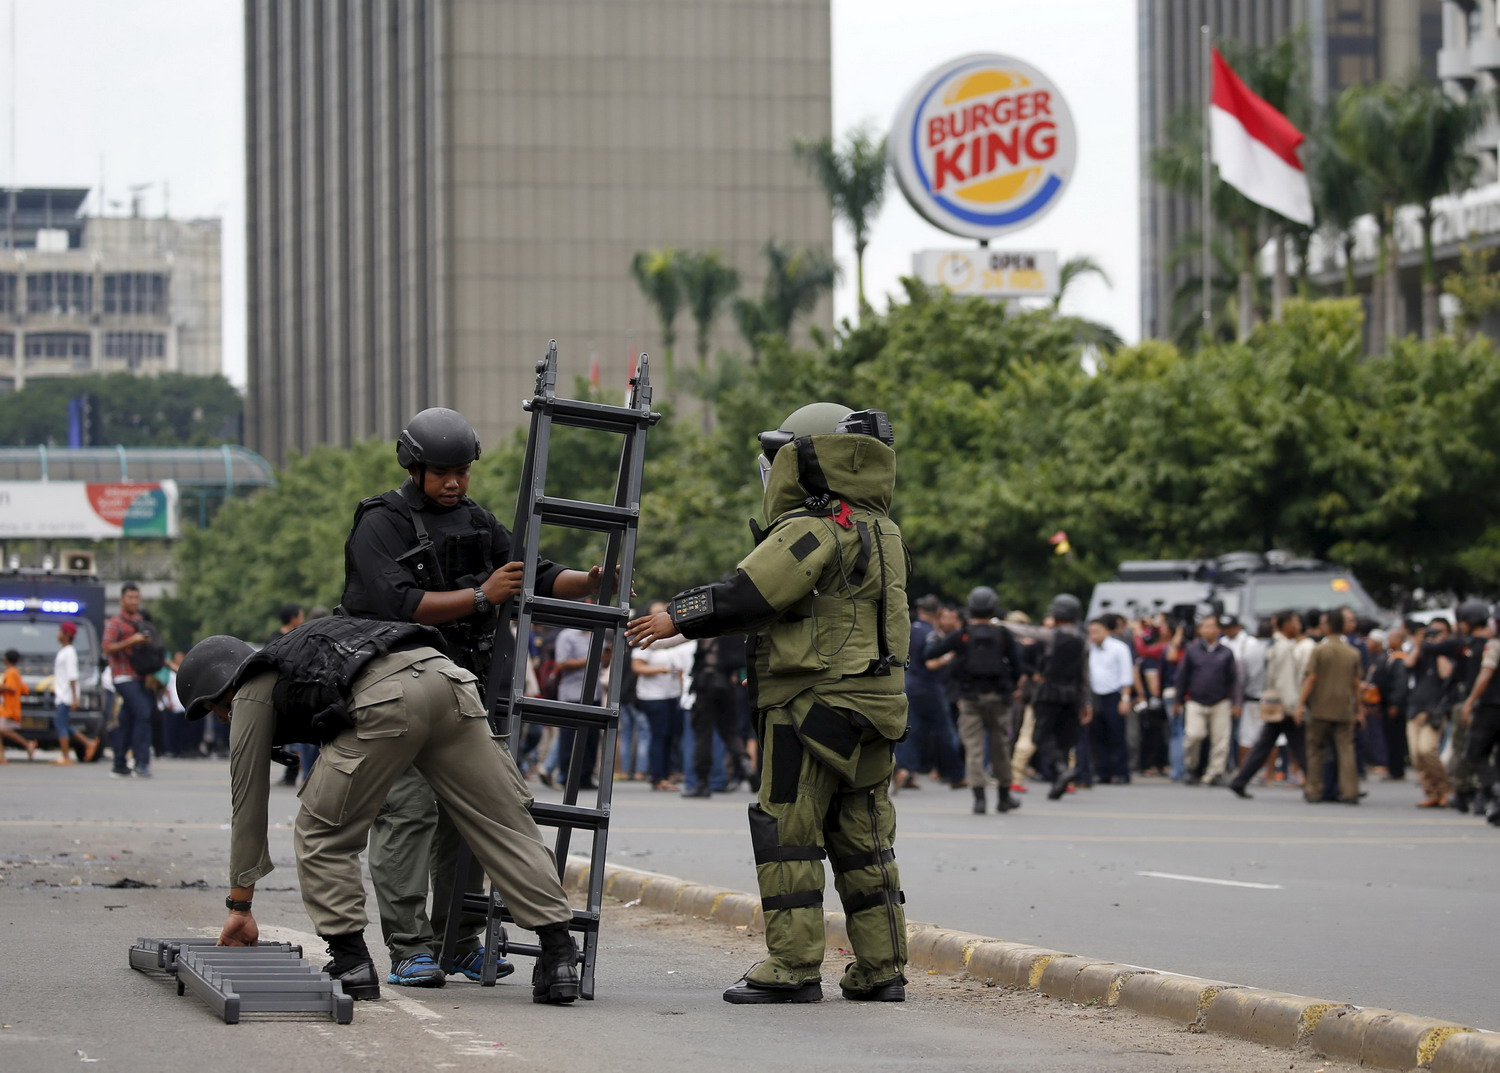 Islamic state officially claims Jakarta attacks -statement